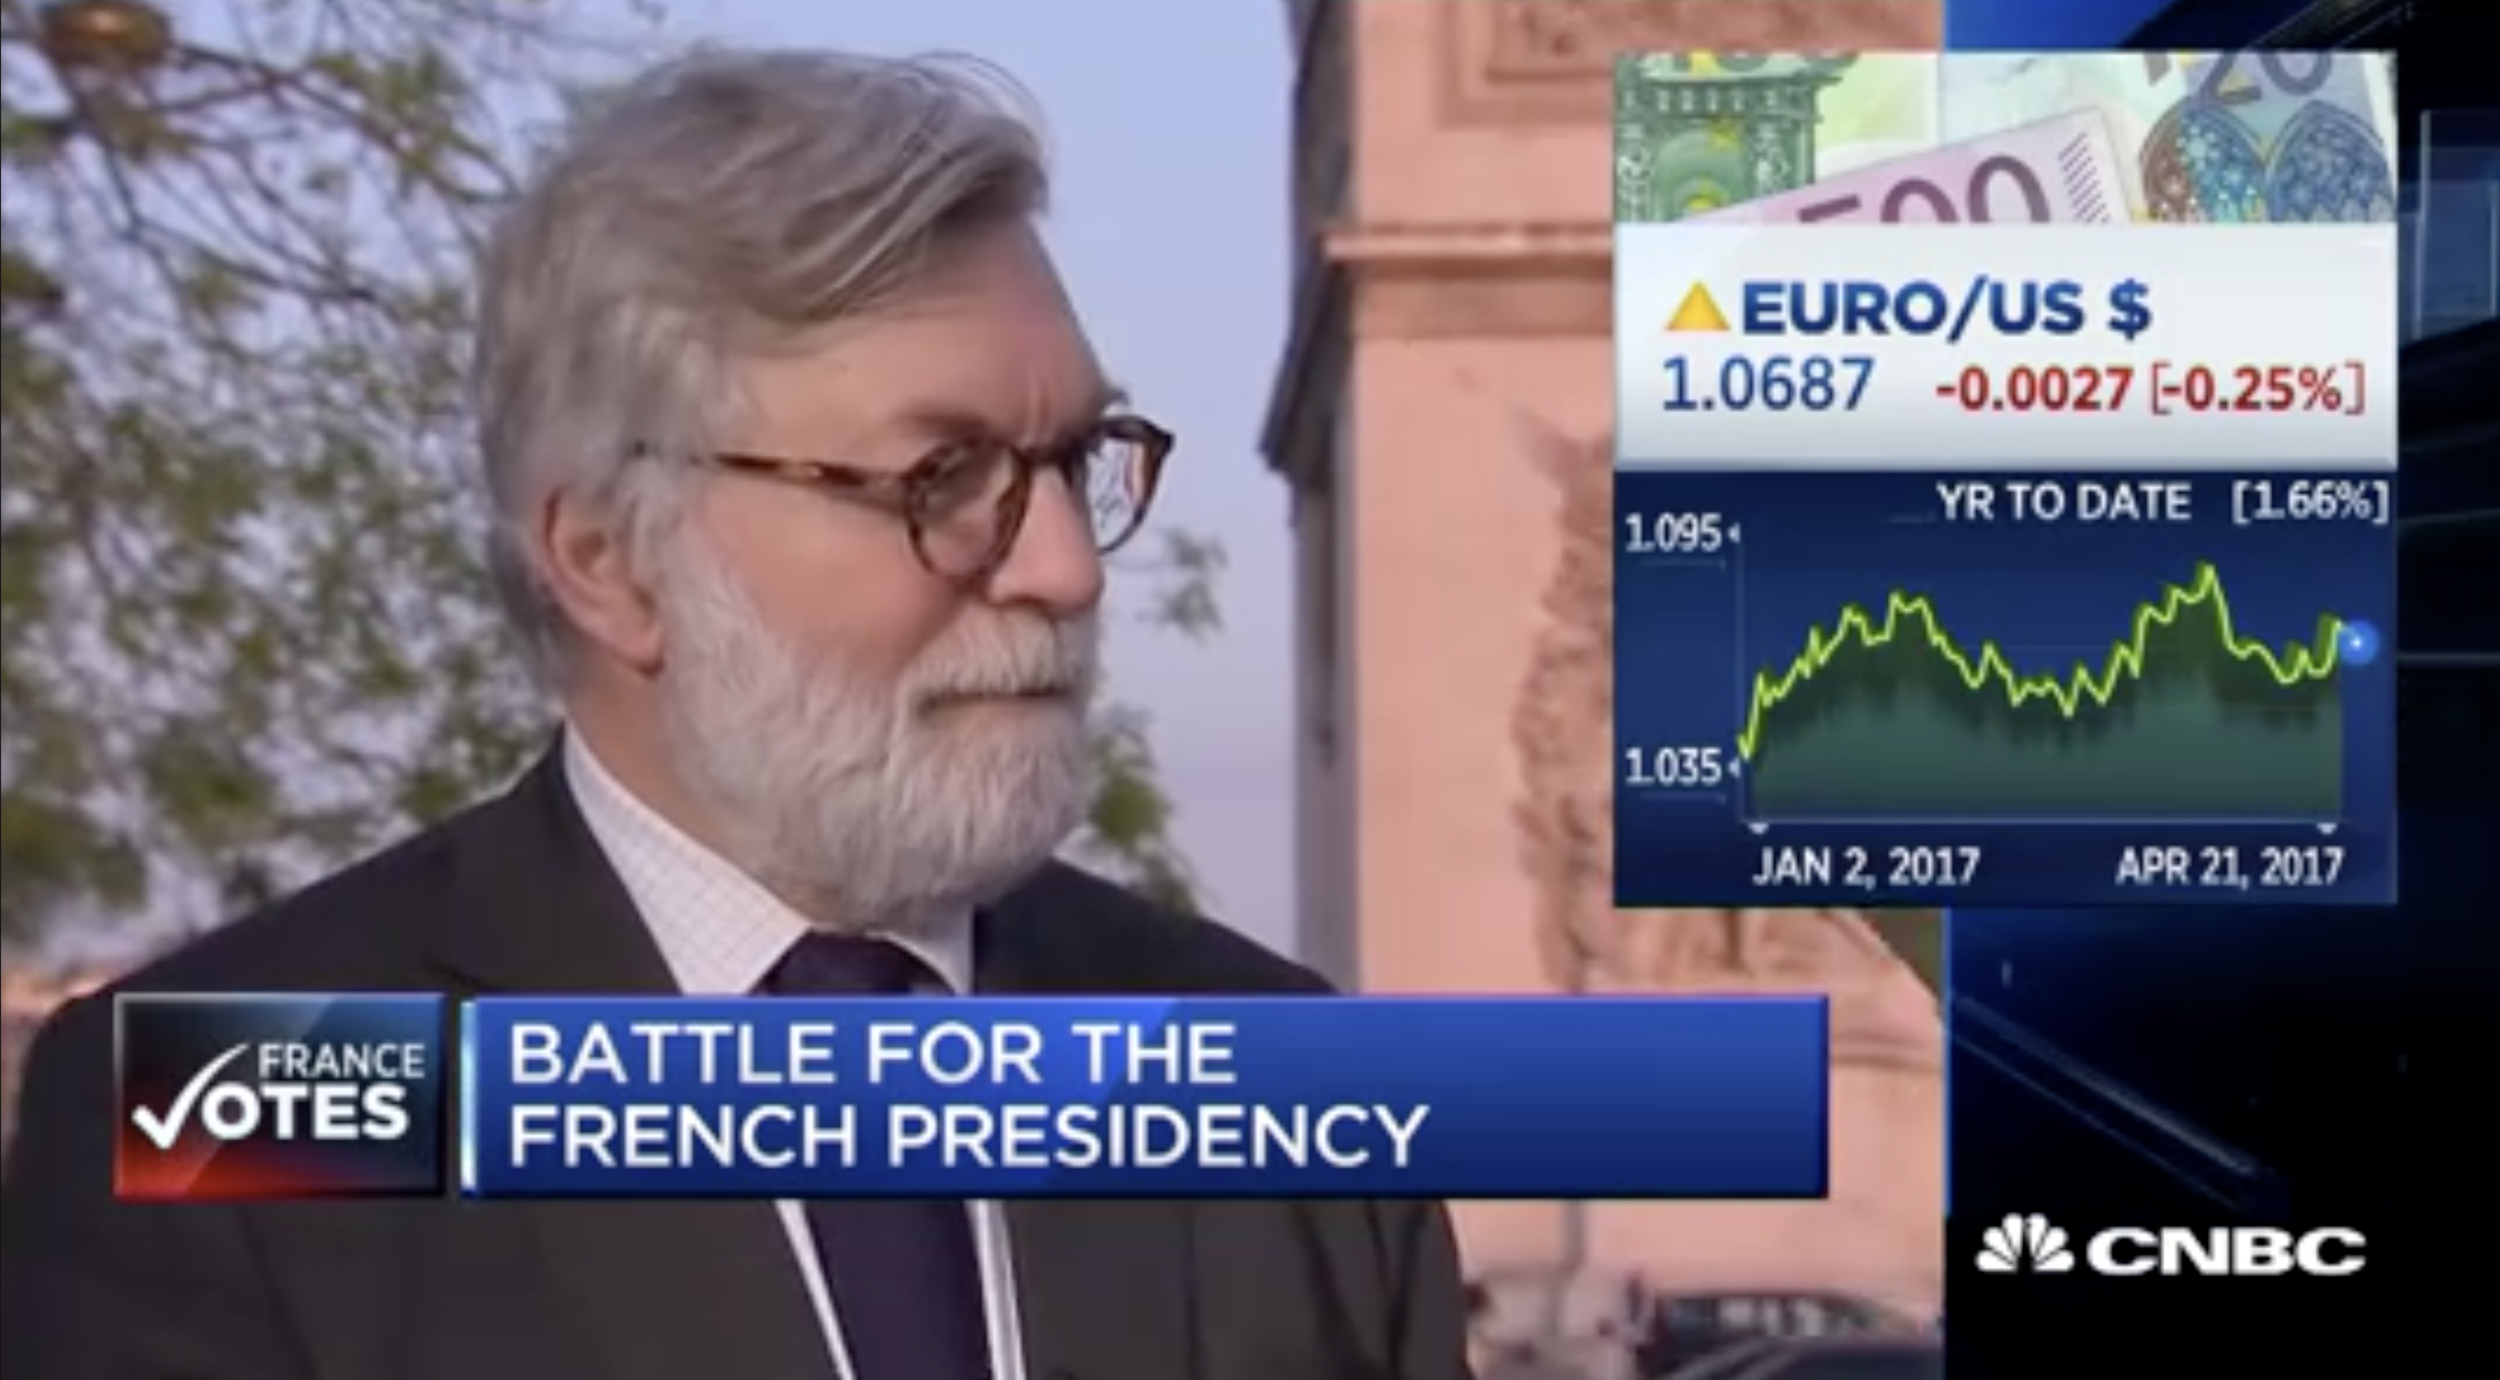 """CNBC : """"The market cases for the French election"""" Local producer - April 2016"""